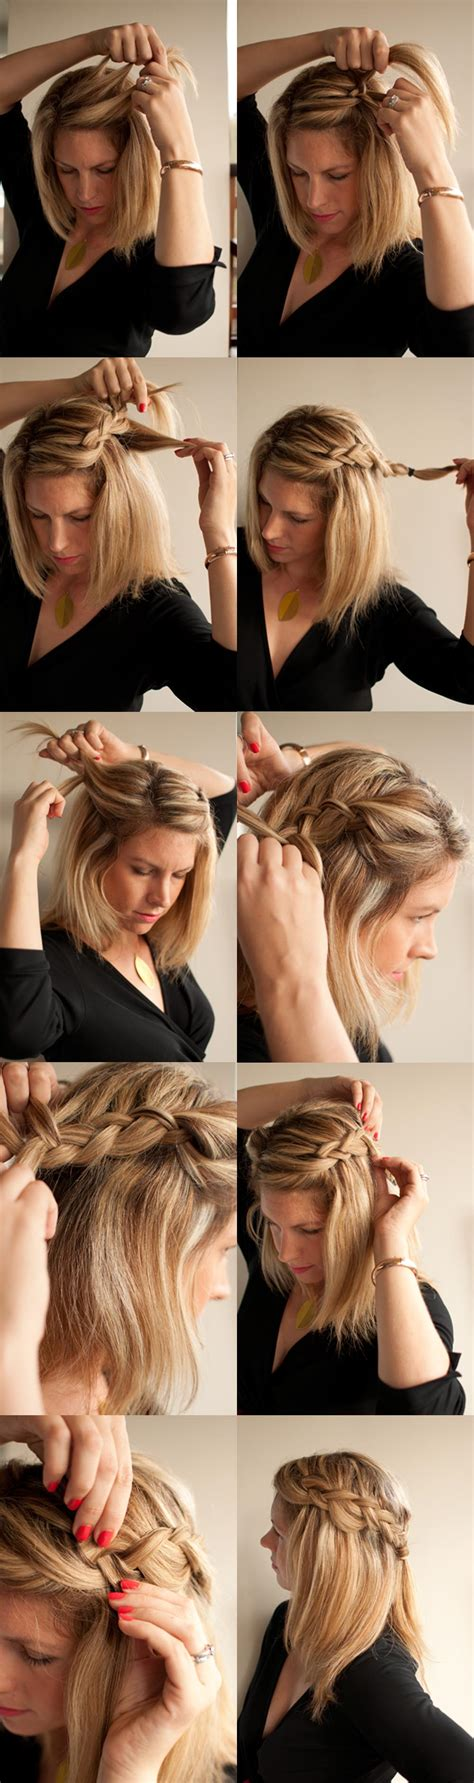 how to braid short hair step by step how to easy braid hairstyle hair romance reader question